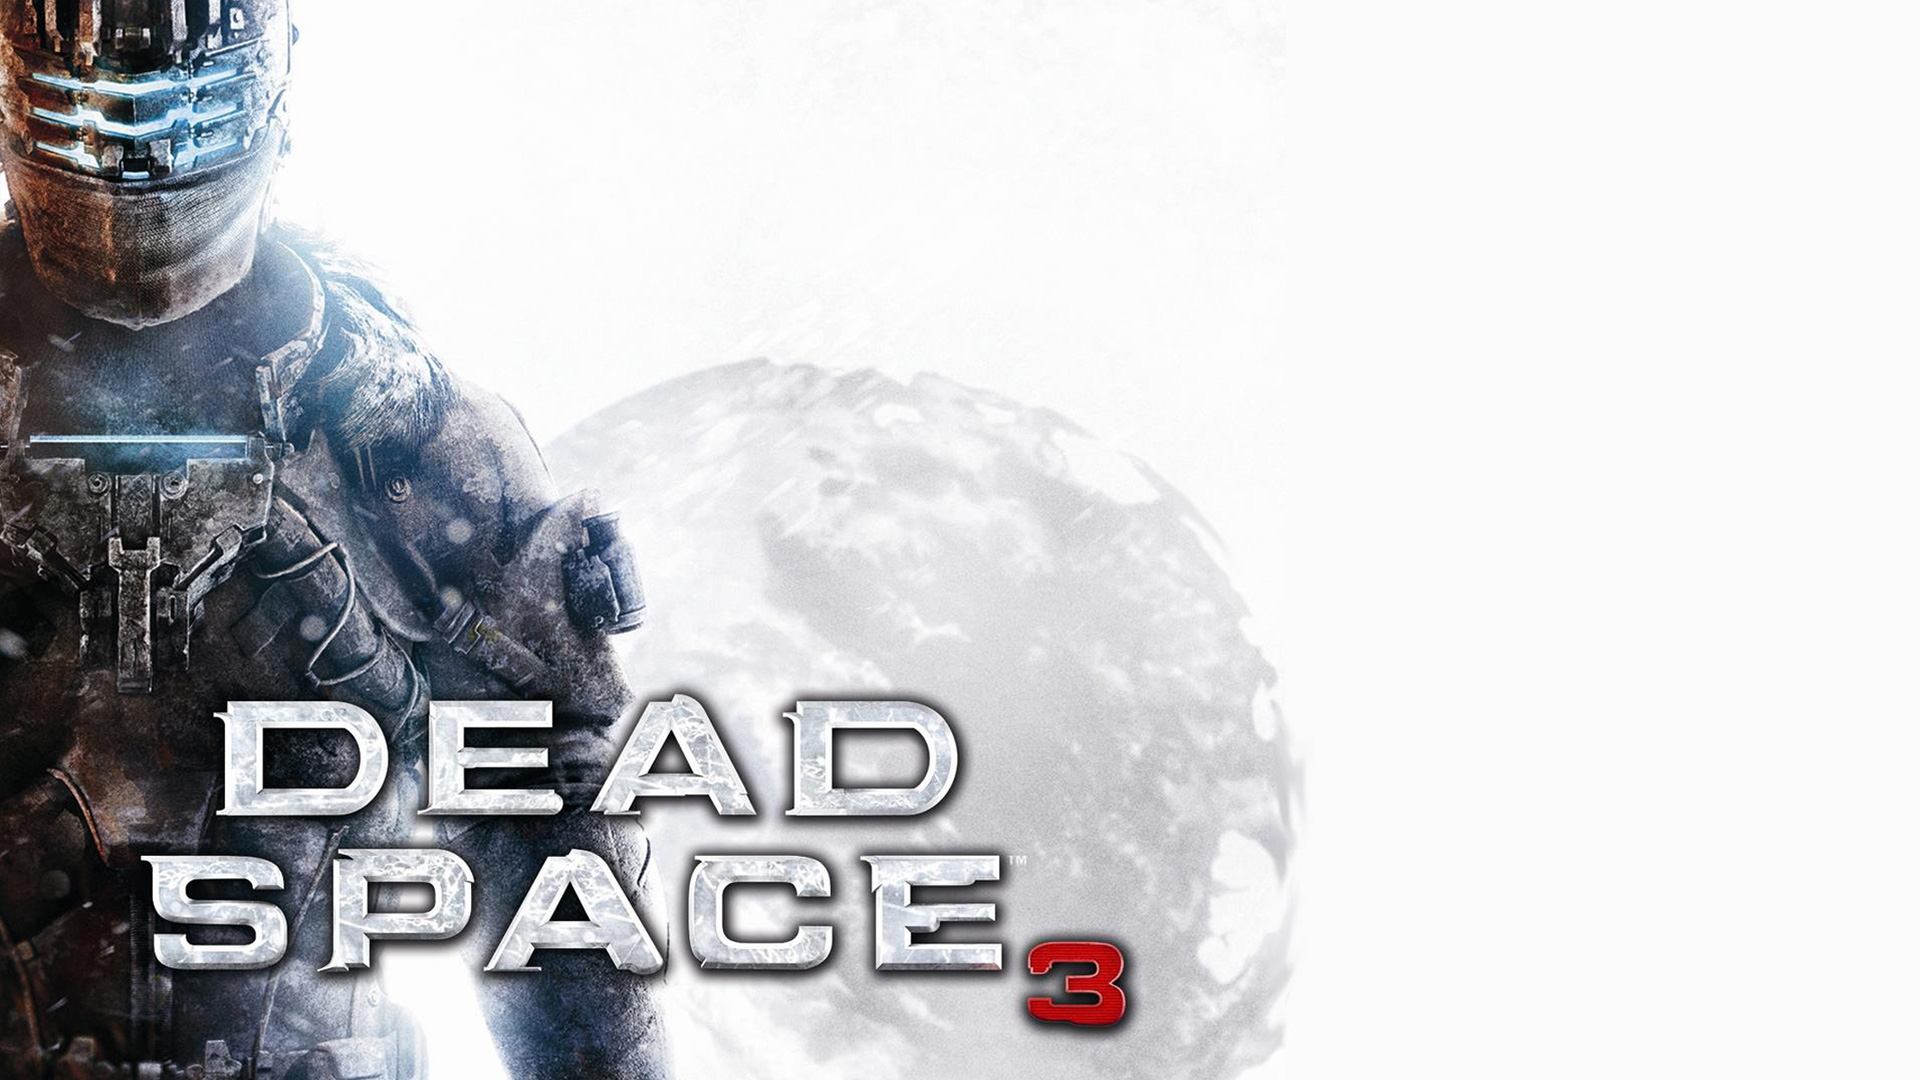 Dead Space 3 - CD-KEY - Key Origin Worldwide + GIFT